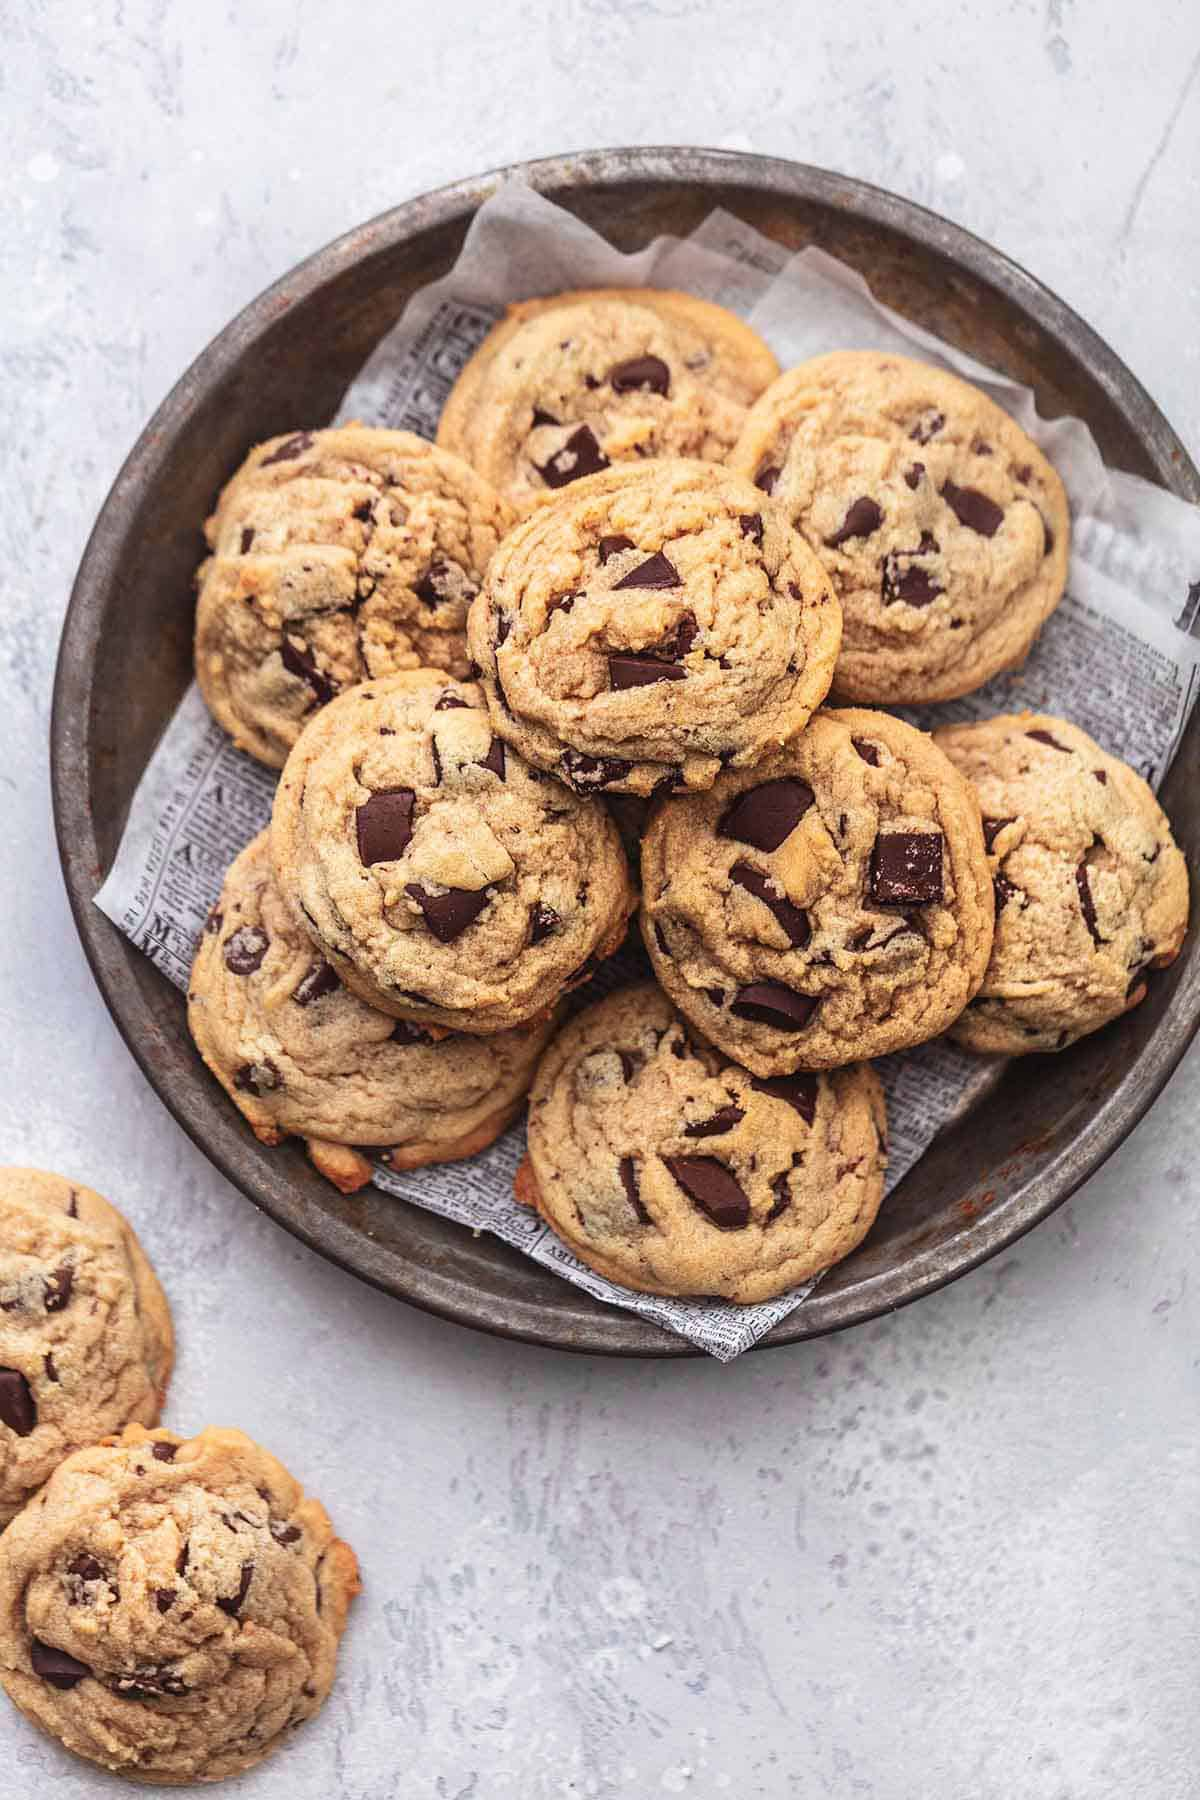 top view of peanut butter chocolate chunk cookies on a platter with more cookies on the side.